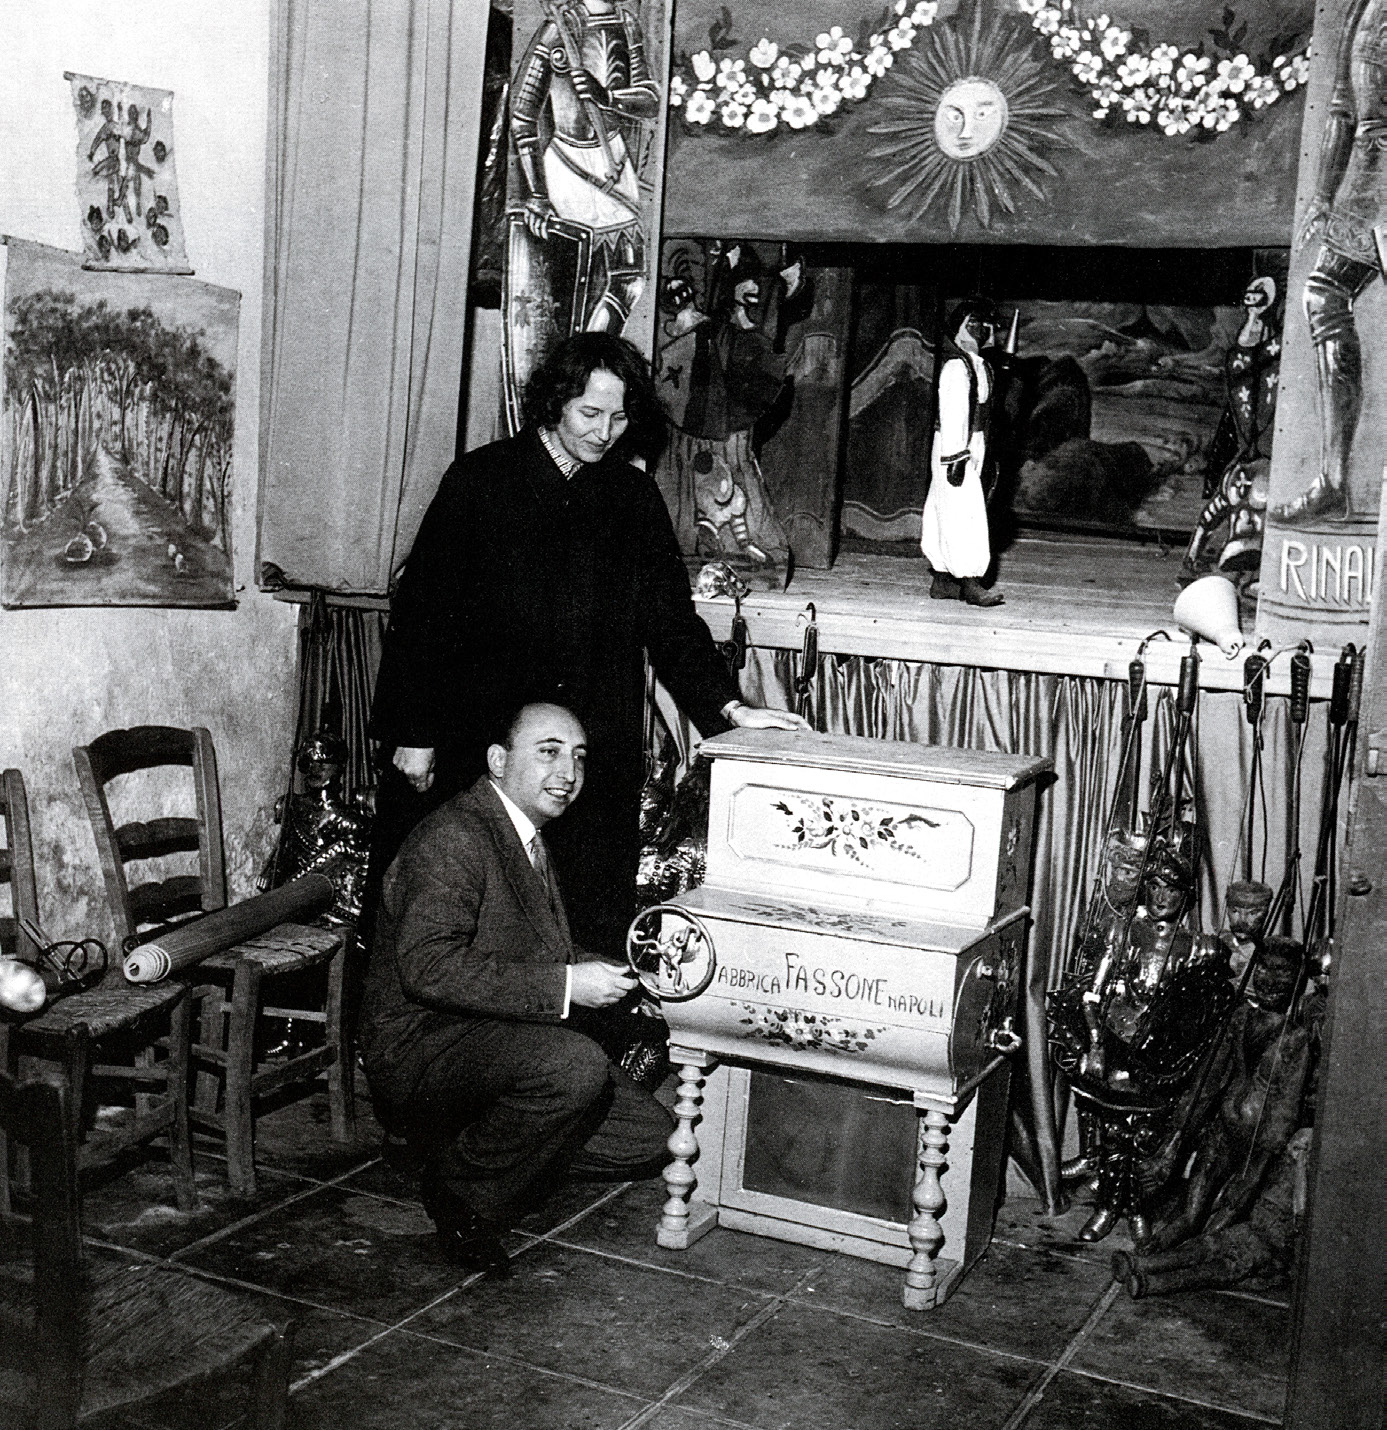 Antonio Pasqualino And His Wife Janne Vibaek In A Sicilian Puppet Theater (1960 Ca.)